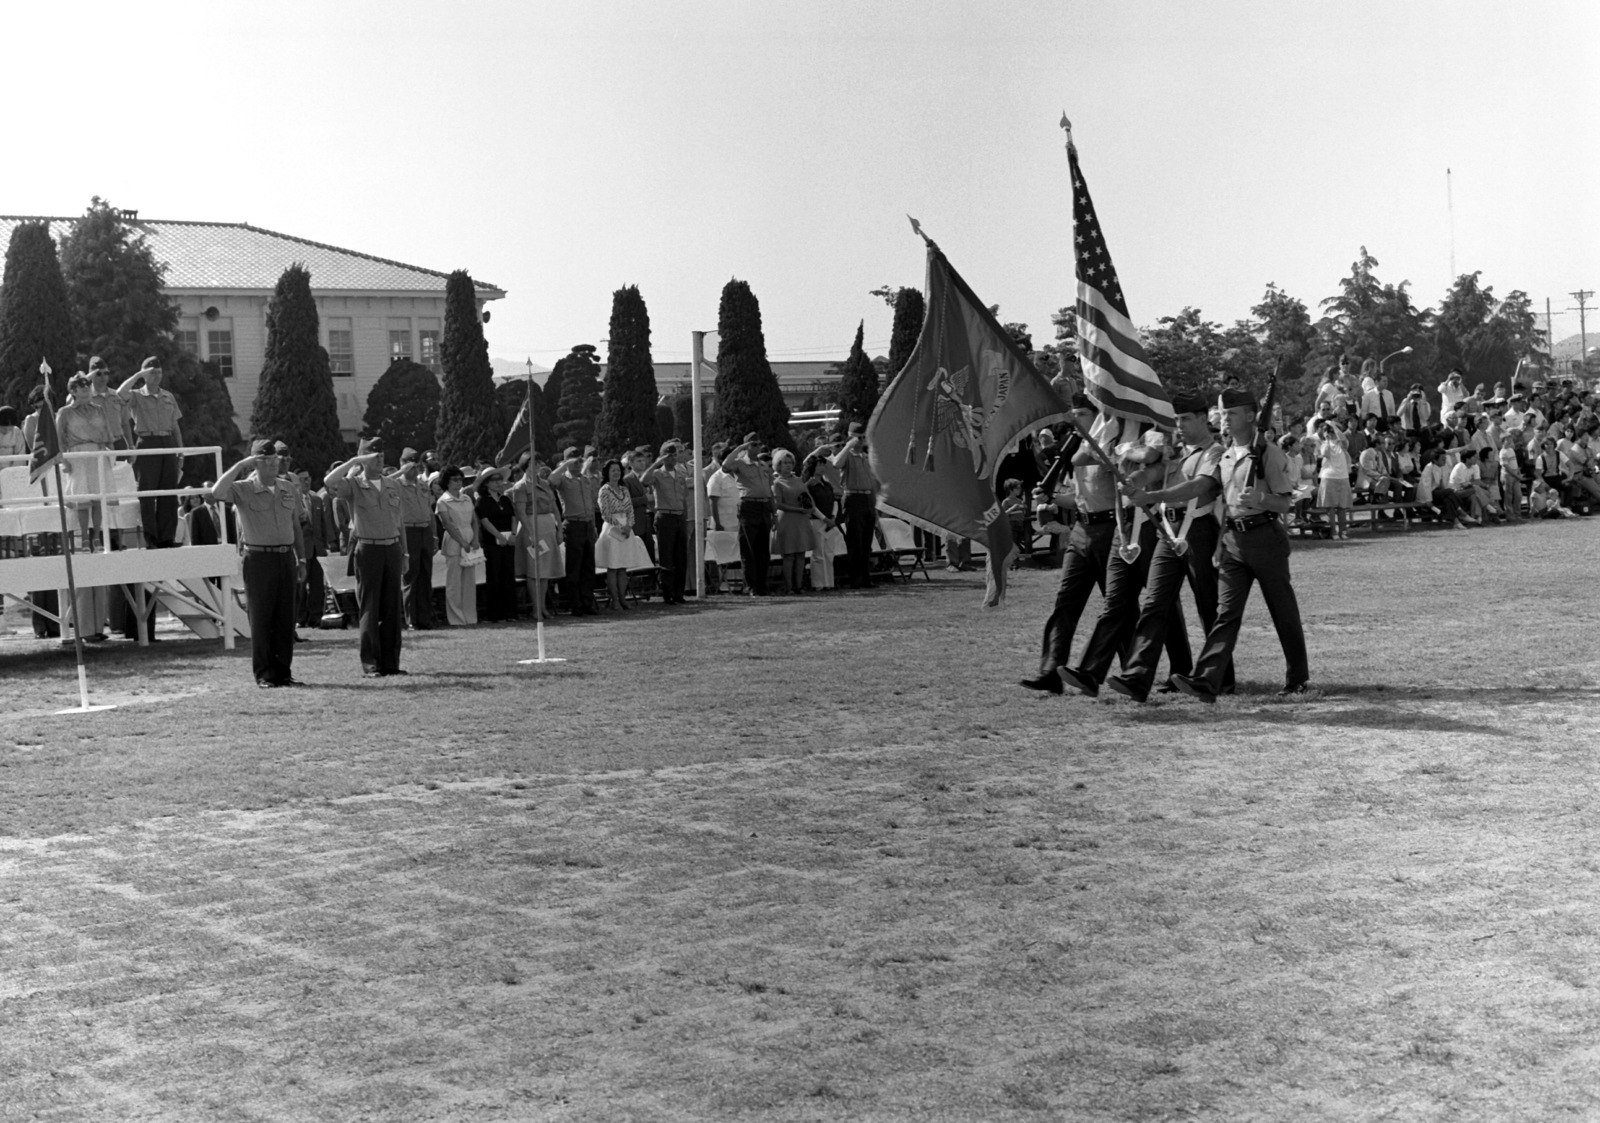 A Marine color guard passes in review during change of command ceremonies for COL Ralph D. Miller who is relieved by COL Speed F. Shea as commanding officer of the Marine Corps Air Station. COL Shea is on the far left side of the photograph